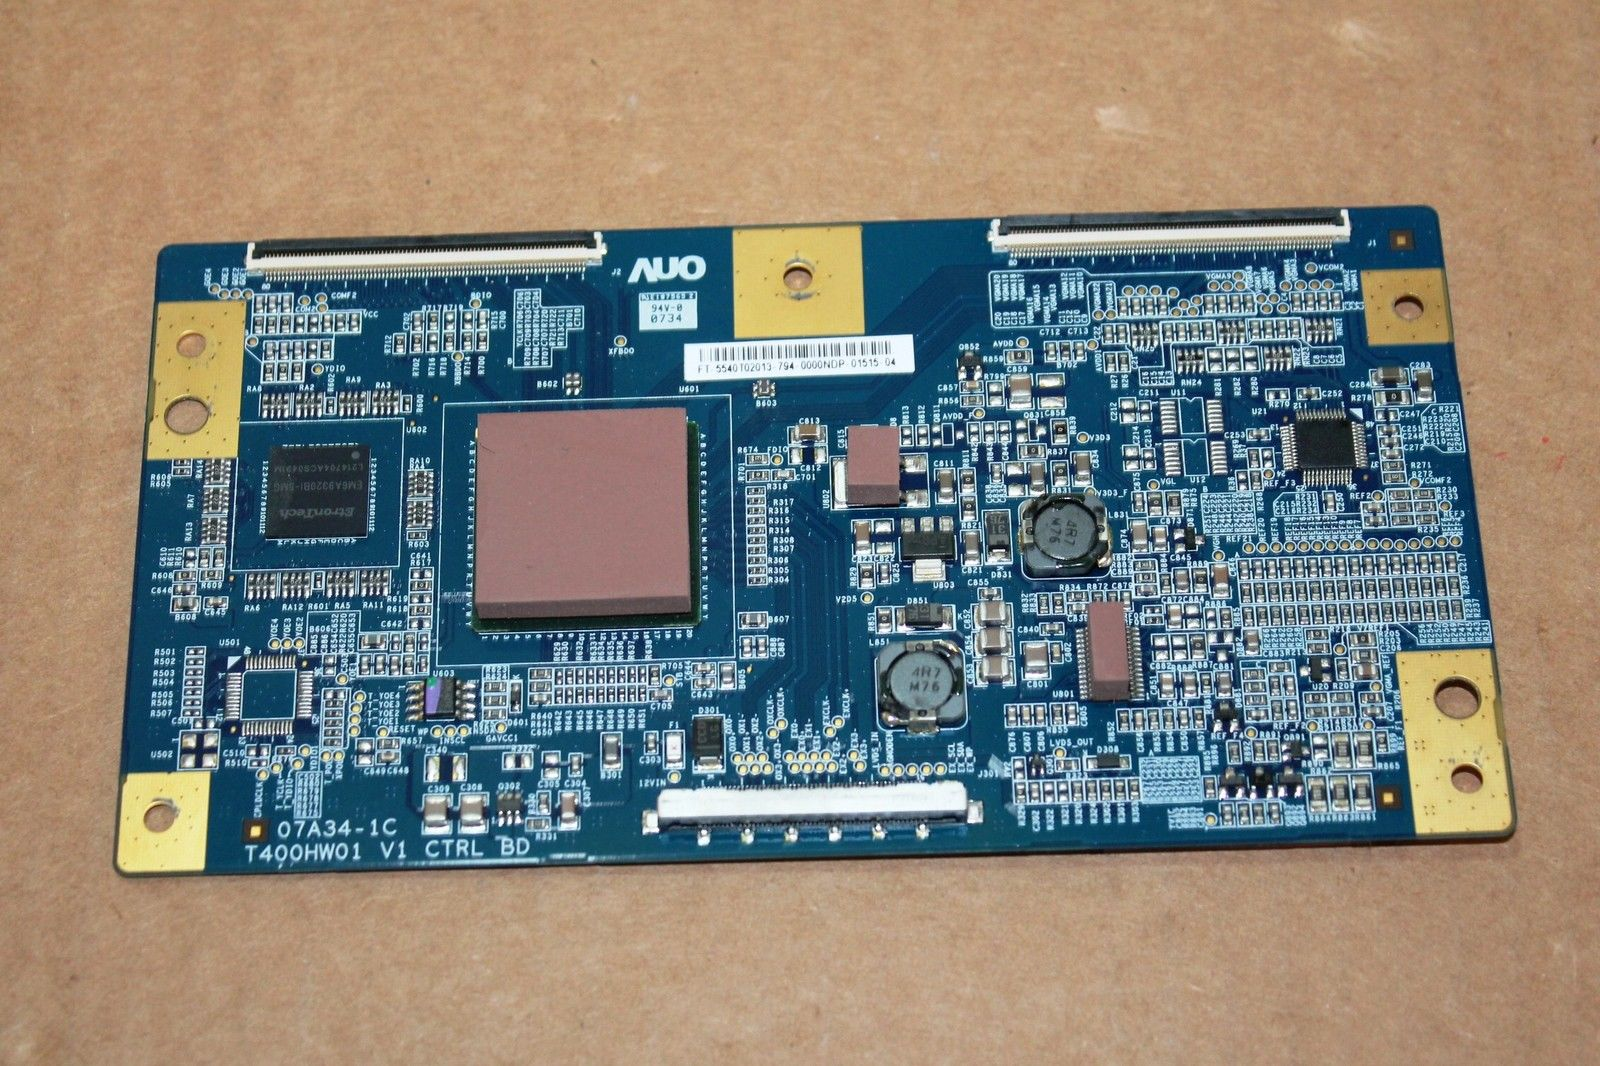 NEW T-CON BOARD LVDS 07A34-1C T400HW01 V1 FOR SONY KDL